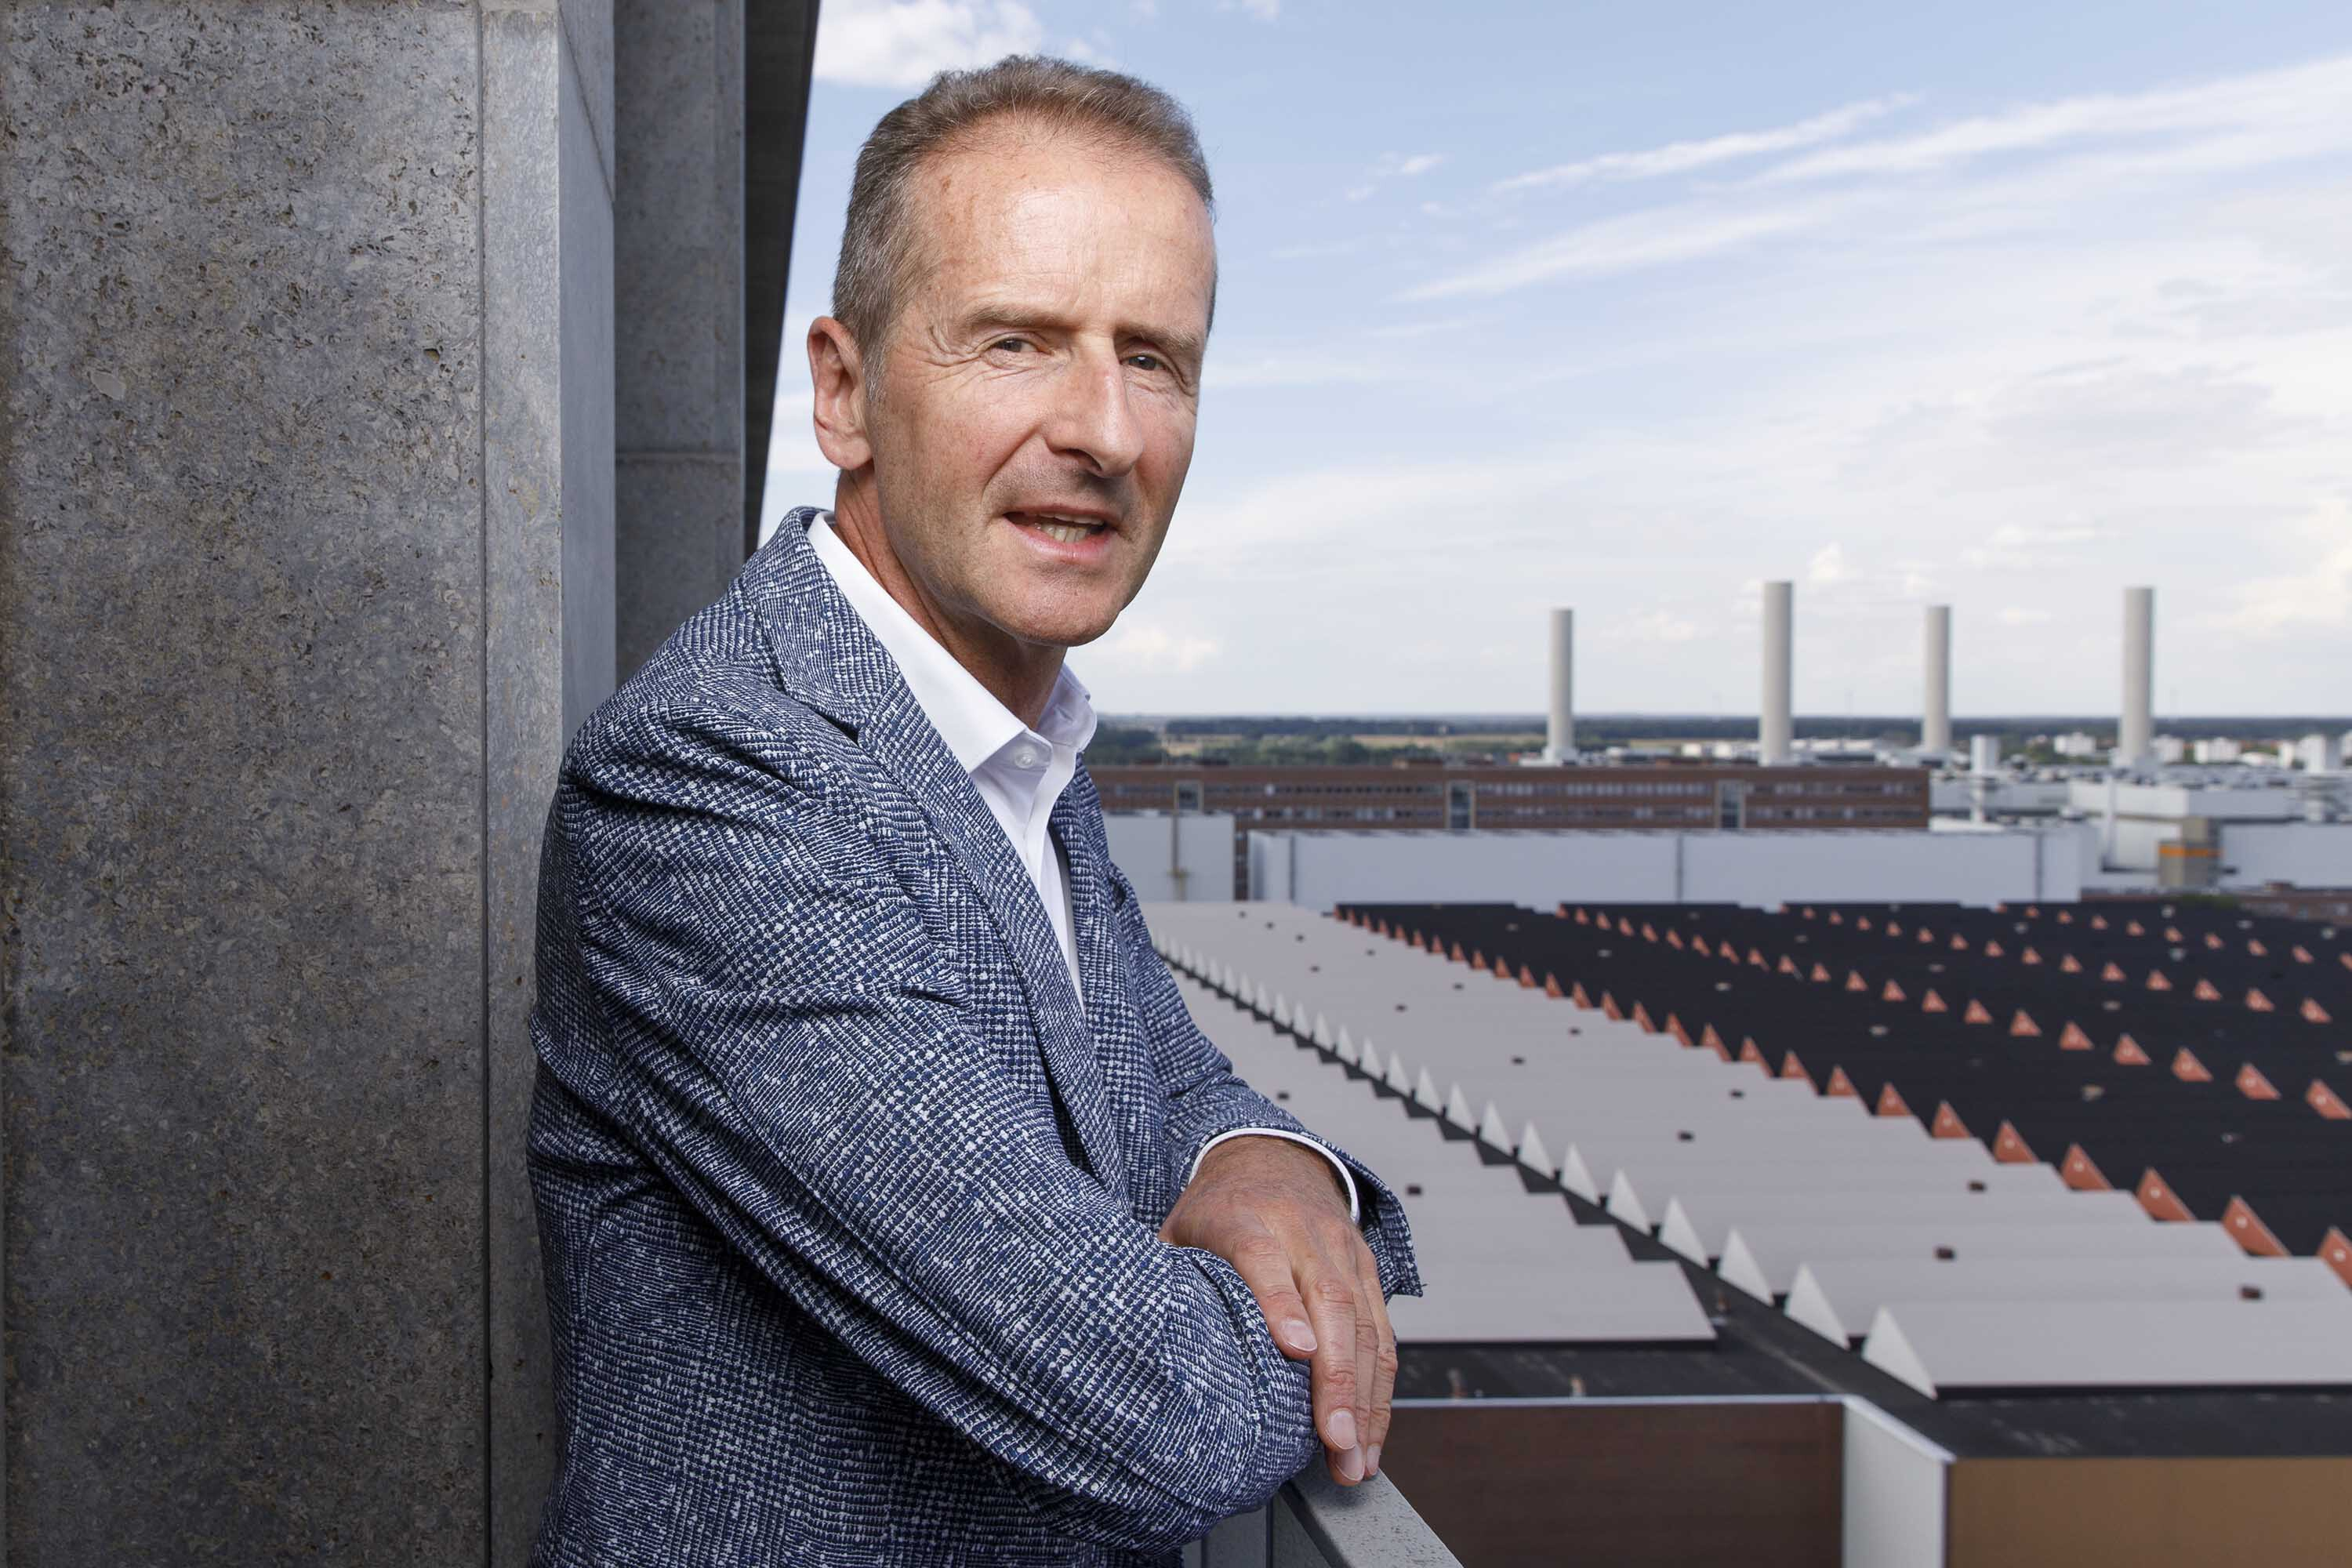 Volkswagen CEO Herbert Diess on the race to electric, the chip shortage and Elon Musk